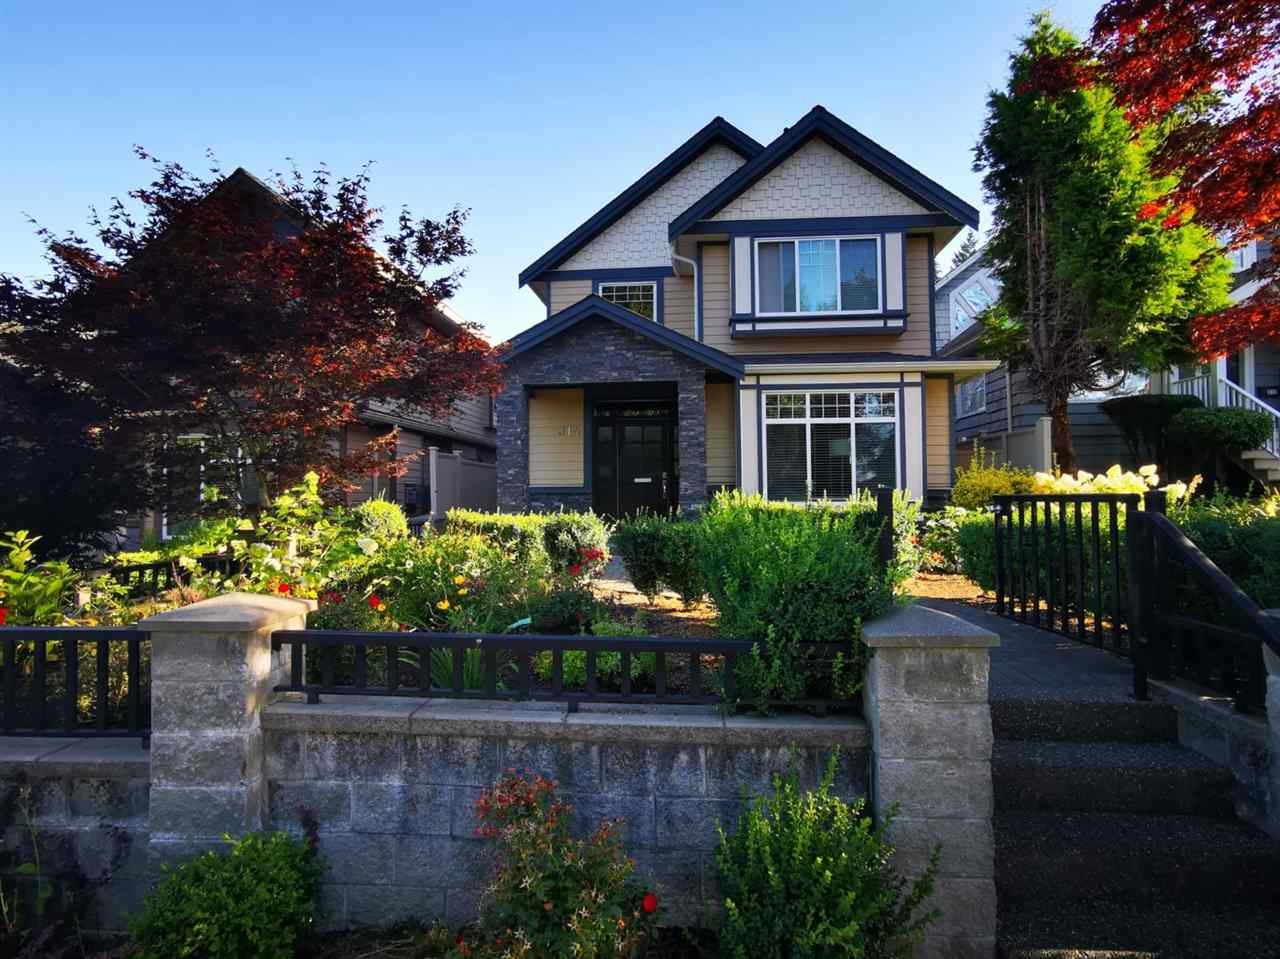 314 W 26TH STREET - Upper Lonsdale House/Single Family for sale, 6 Bedrooms (R2484672) - #1